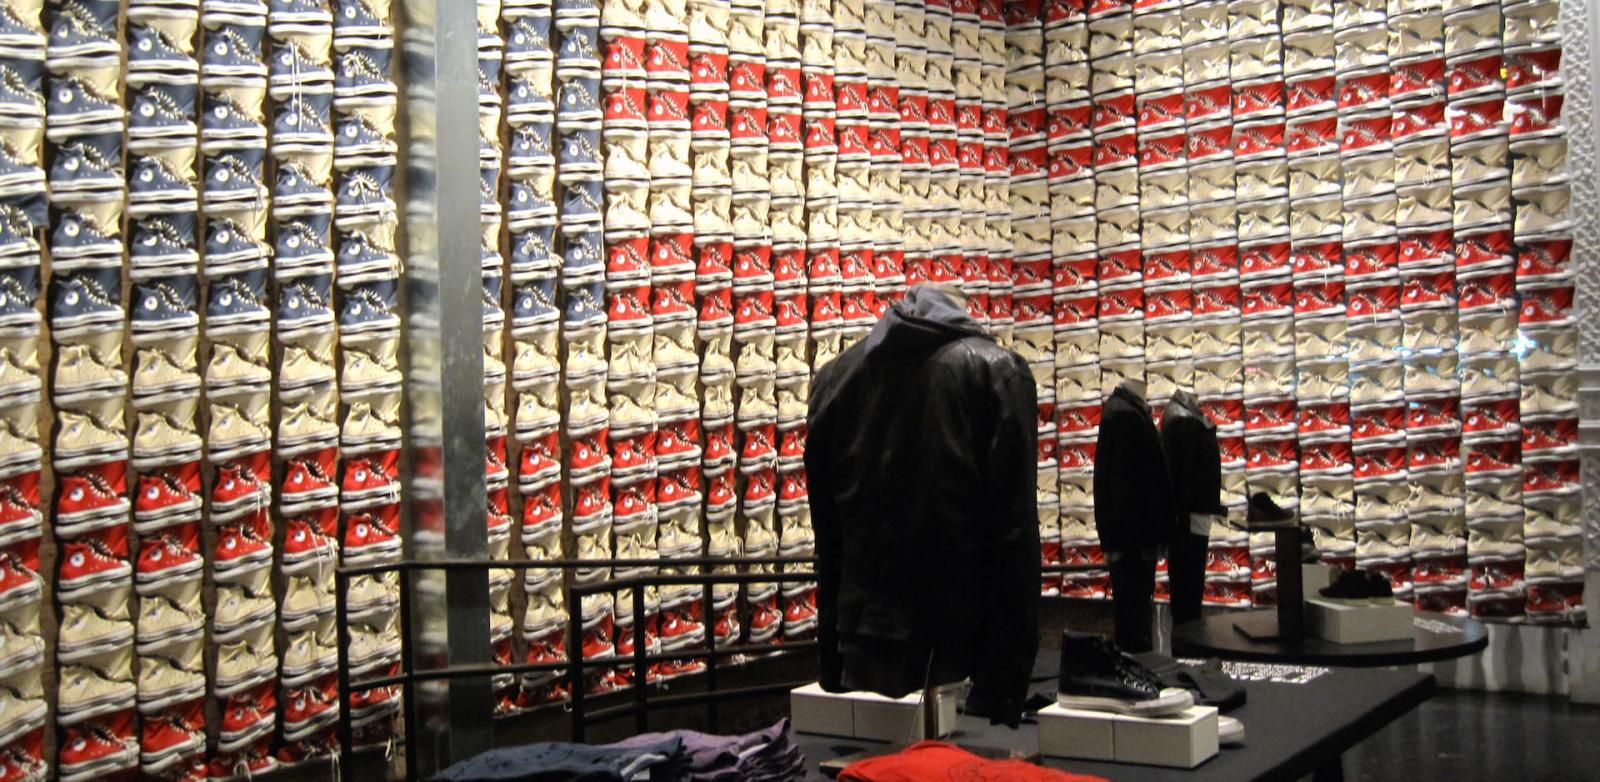 The Converse Speciality Store in SoHo